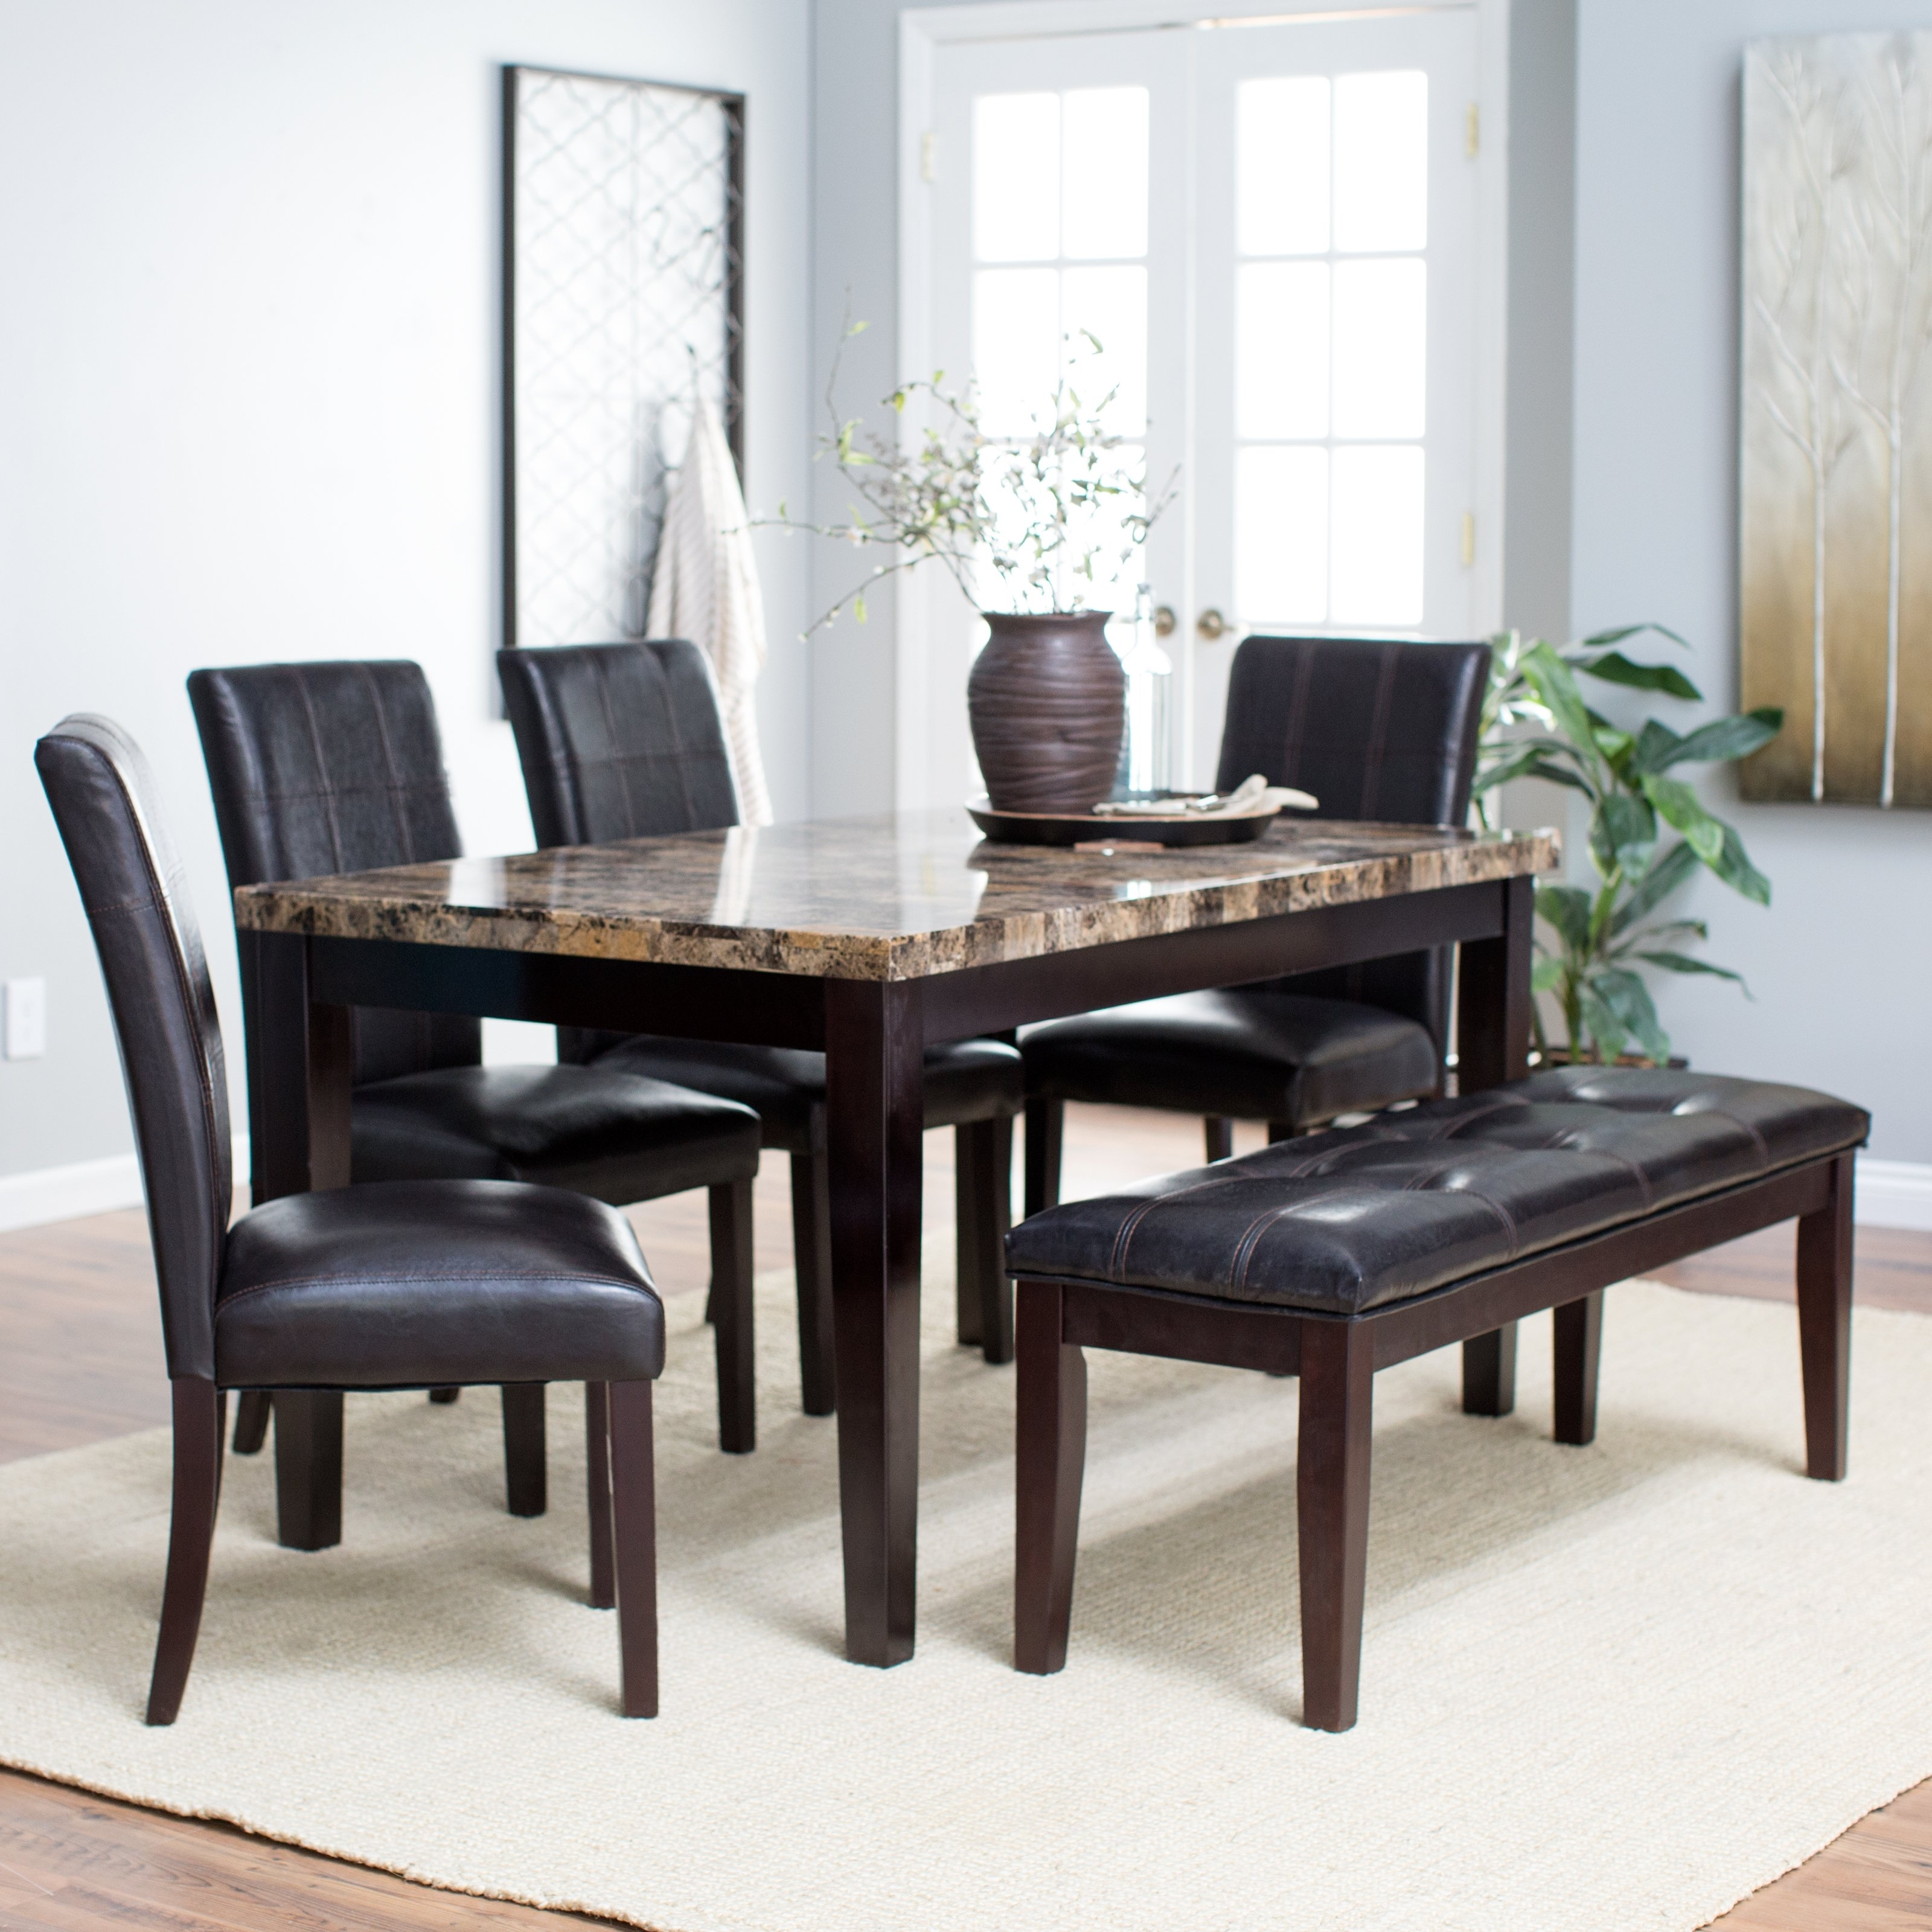 Finley Home Palazzo 6 Piece Dining Set With Bench (View 5 of 25)